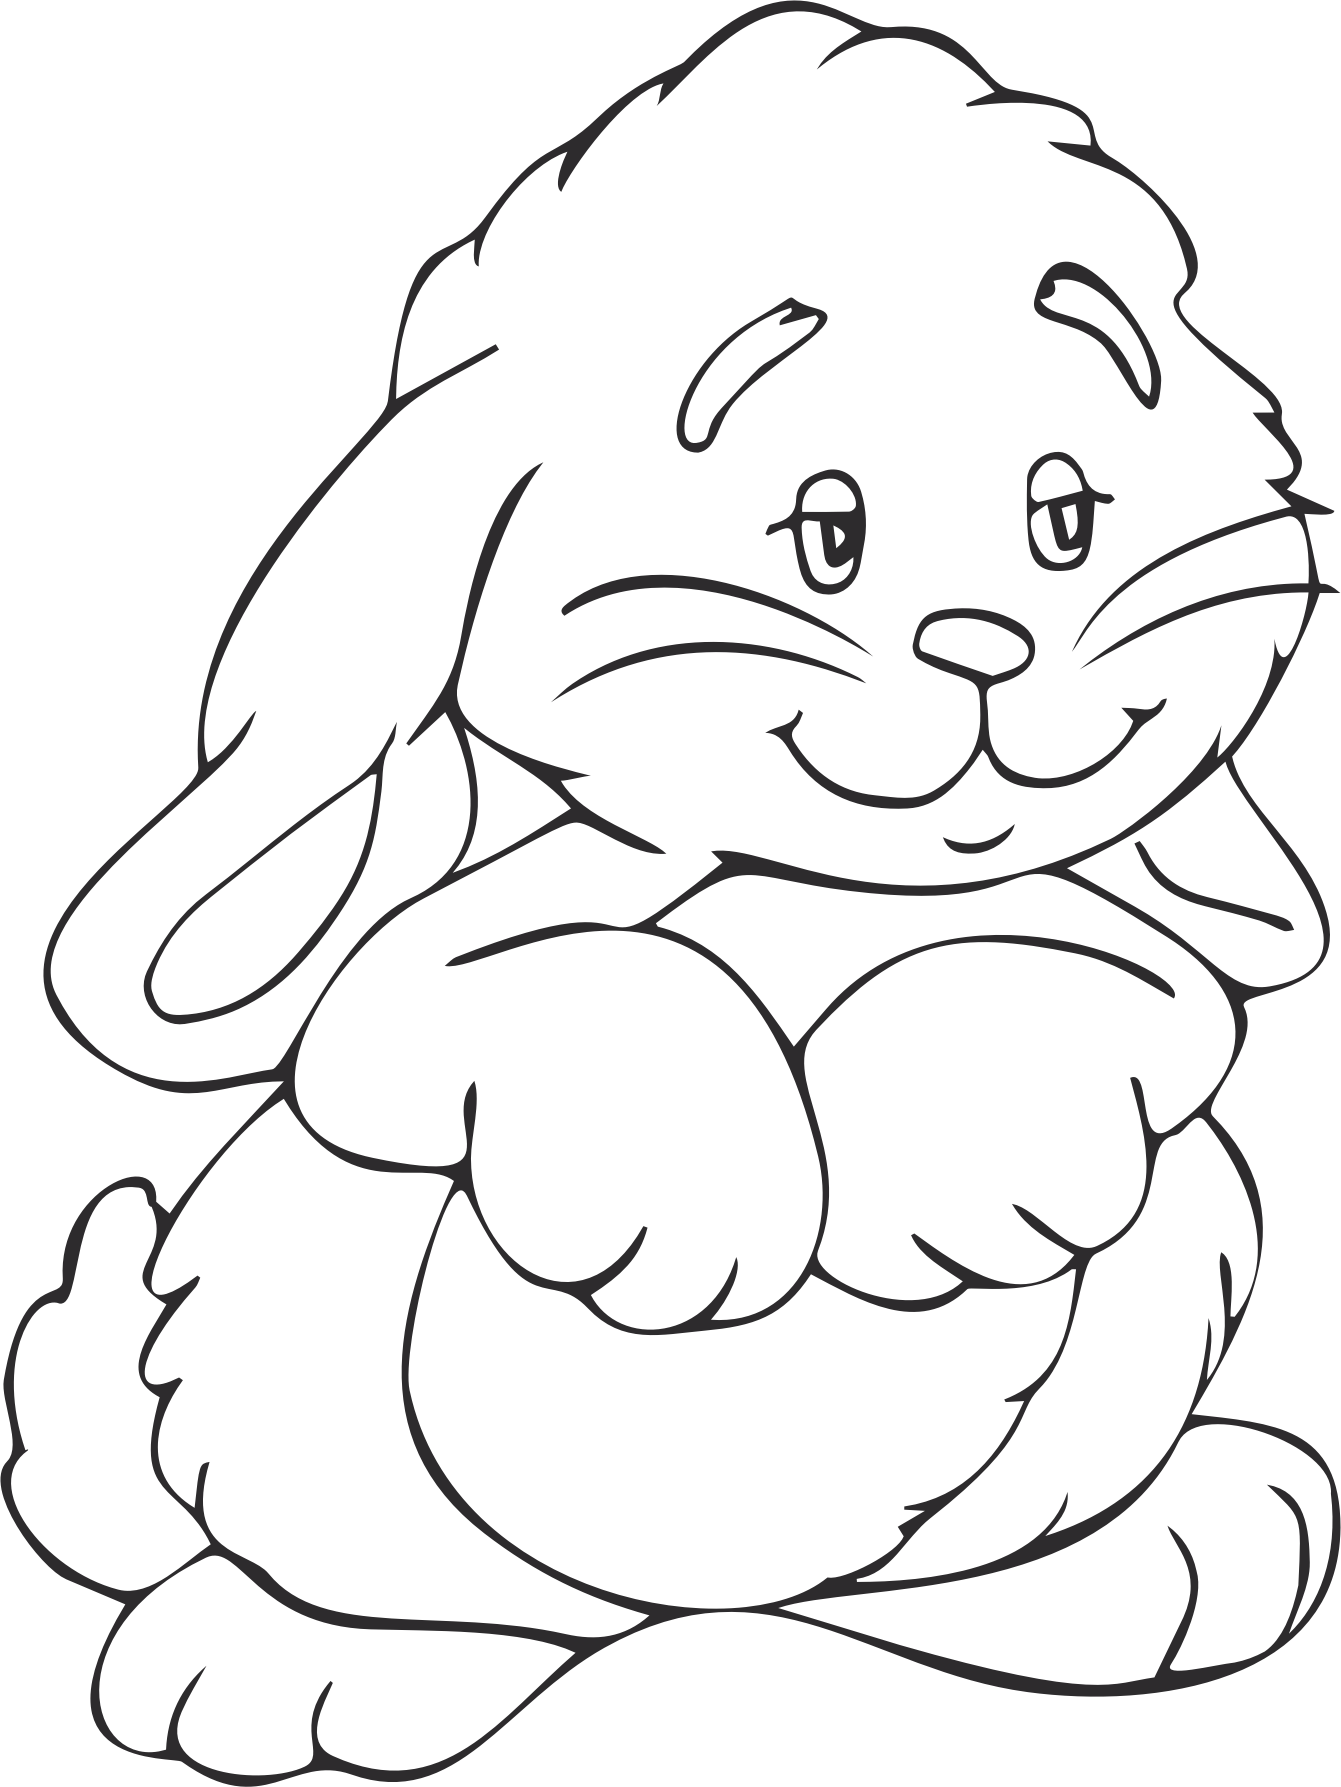 Bunny Outline Png Bunny Outline